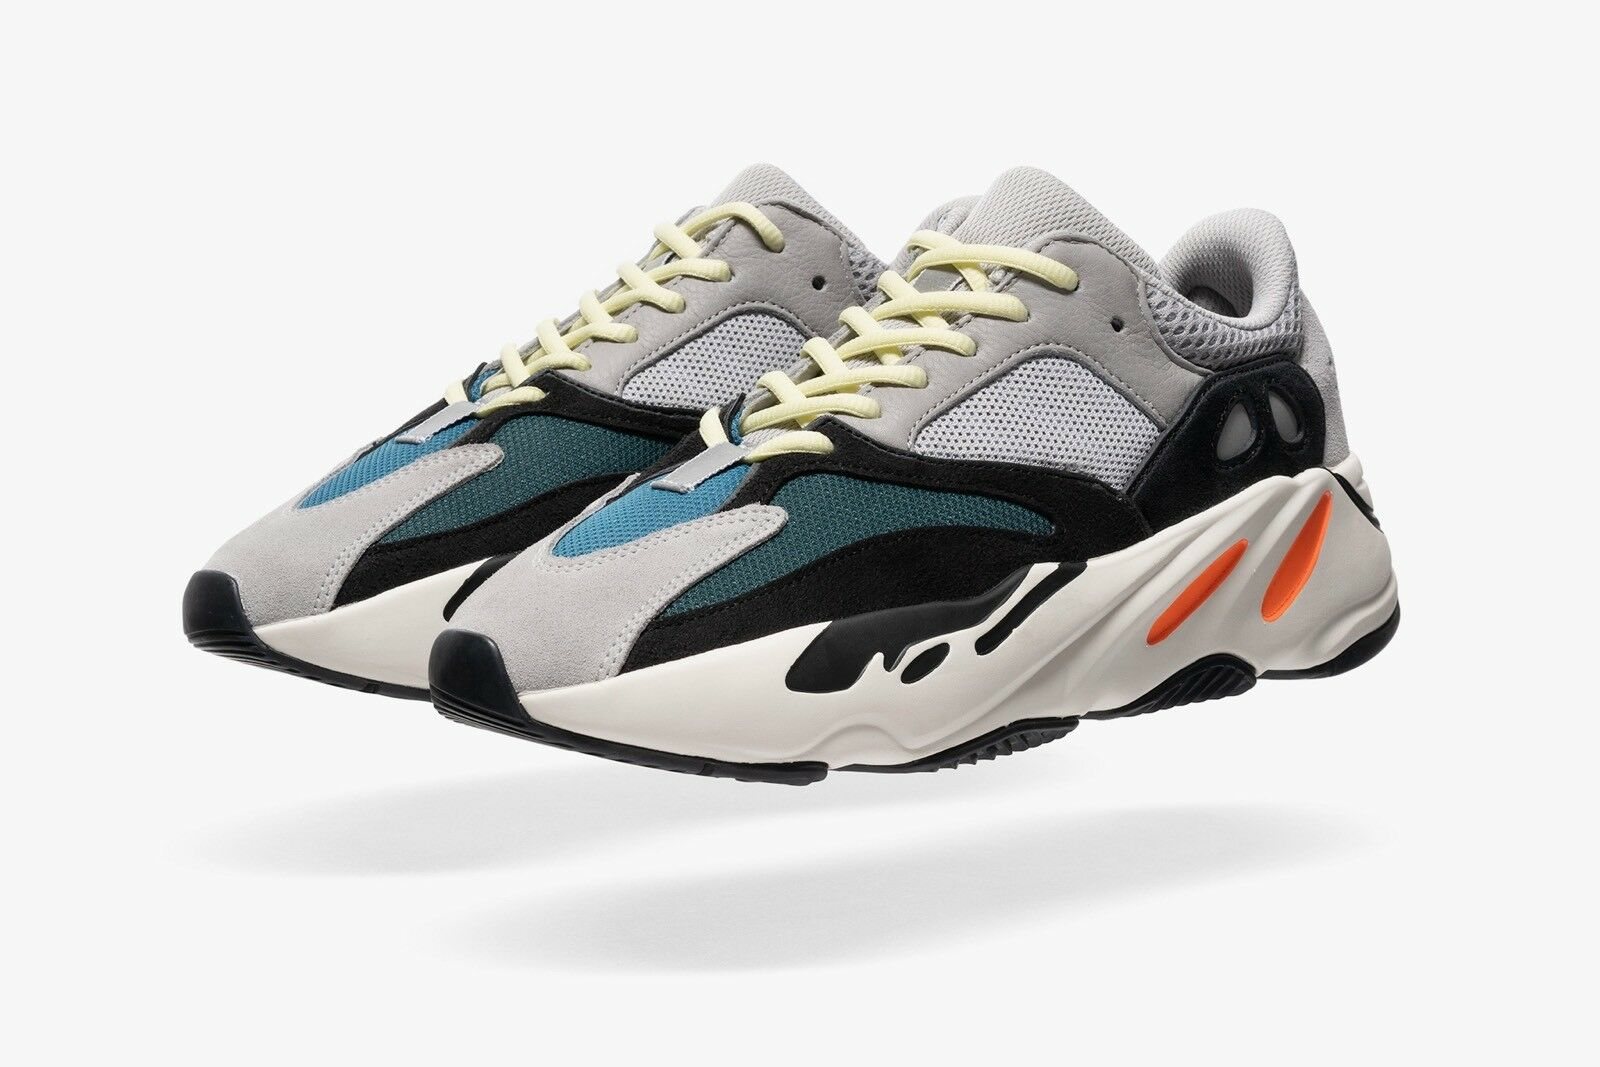 info for 28c26 c287c Adidas Yeezy Wave Runner 700 700 700 size 10 e26342